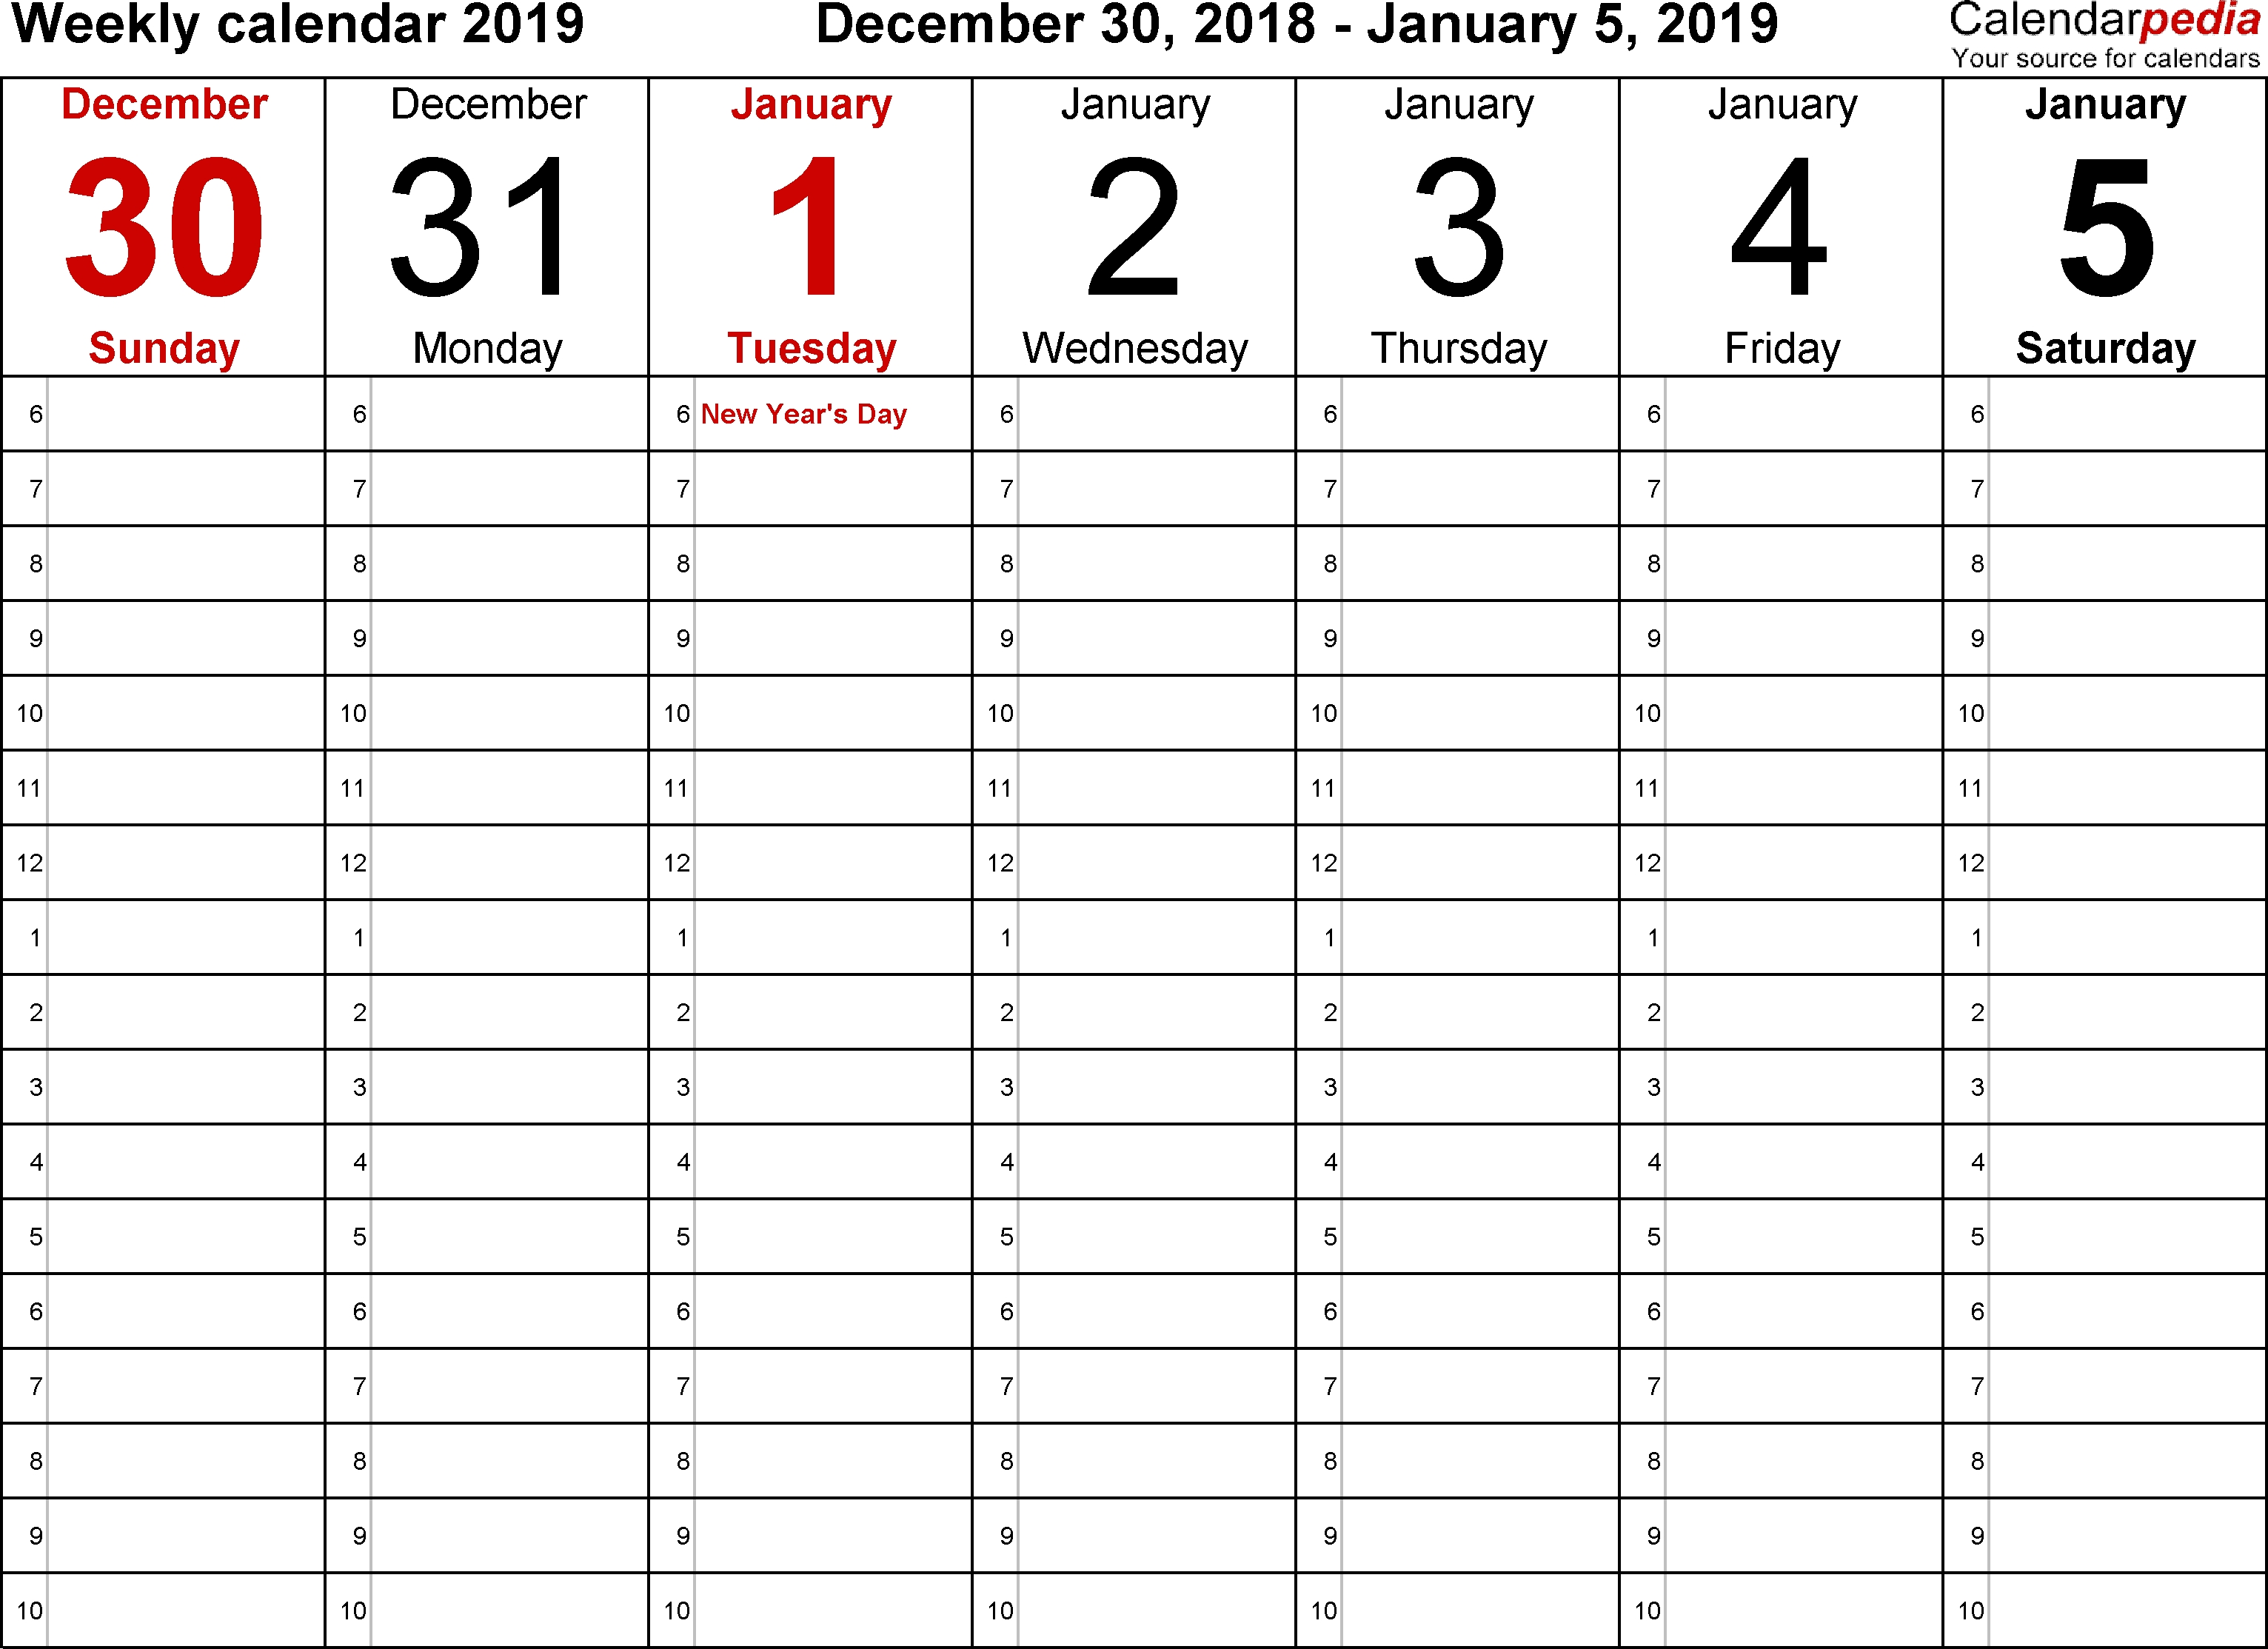 Weekly Calendar 2019 For Word - 12 Free Printable Templates within Days Of The Week Printable Calendar